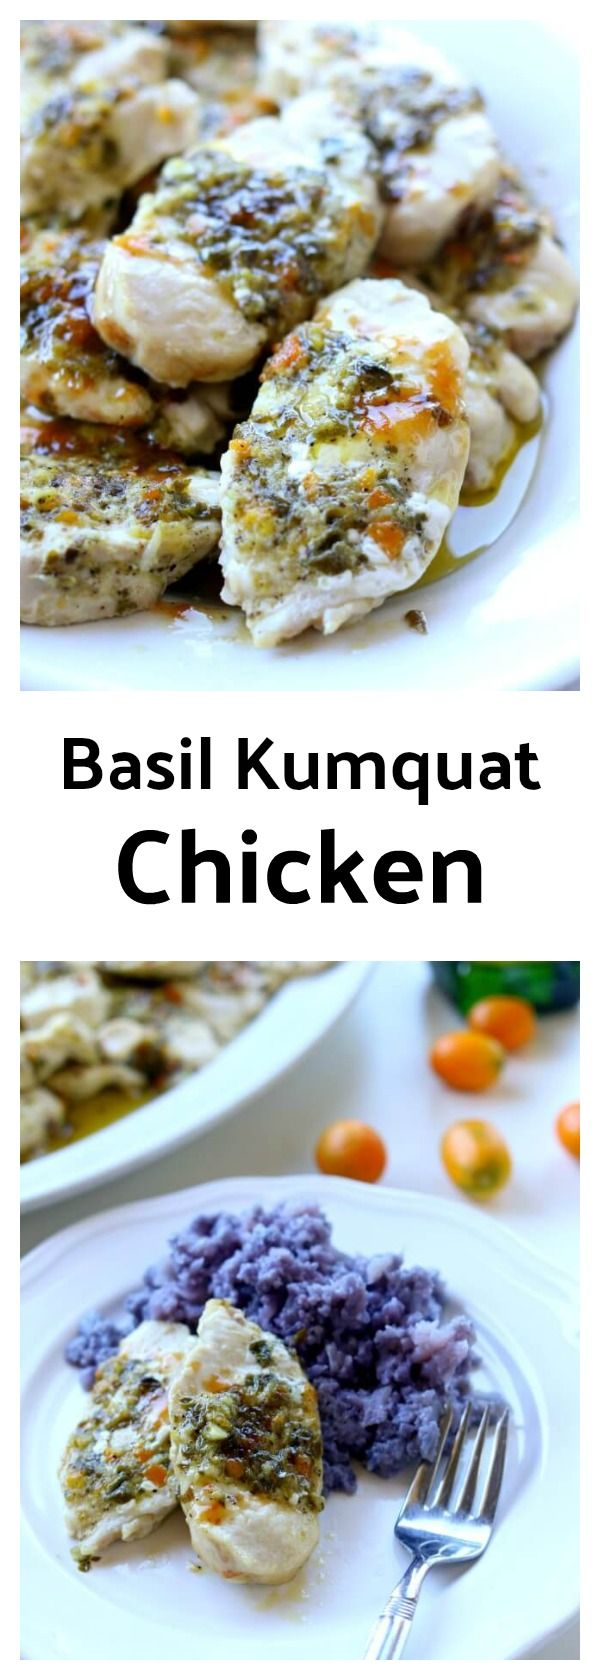 """Basil Kumquat Chicken with Purple Cauliflower Mash–this elegant meal contains just 5 ingredients! Olive oil, fresh basil, kumquats, chicken and purple cauliflower (and salt and pepper, but I'm not counting that as an """"ingredient""""). Who knew that such simple ingredients could come together and make such a flavorful dinner?"""